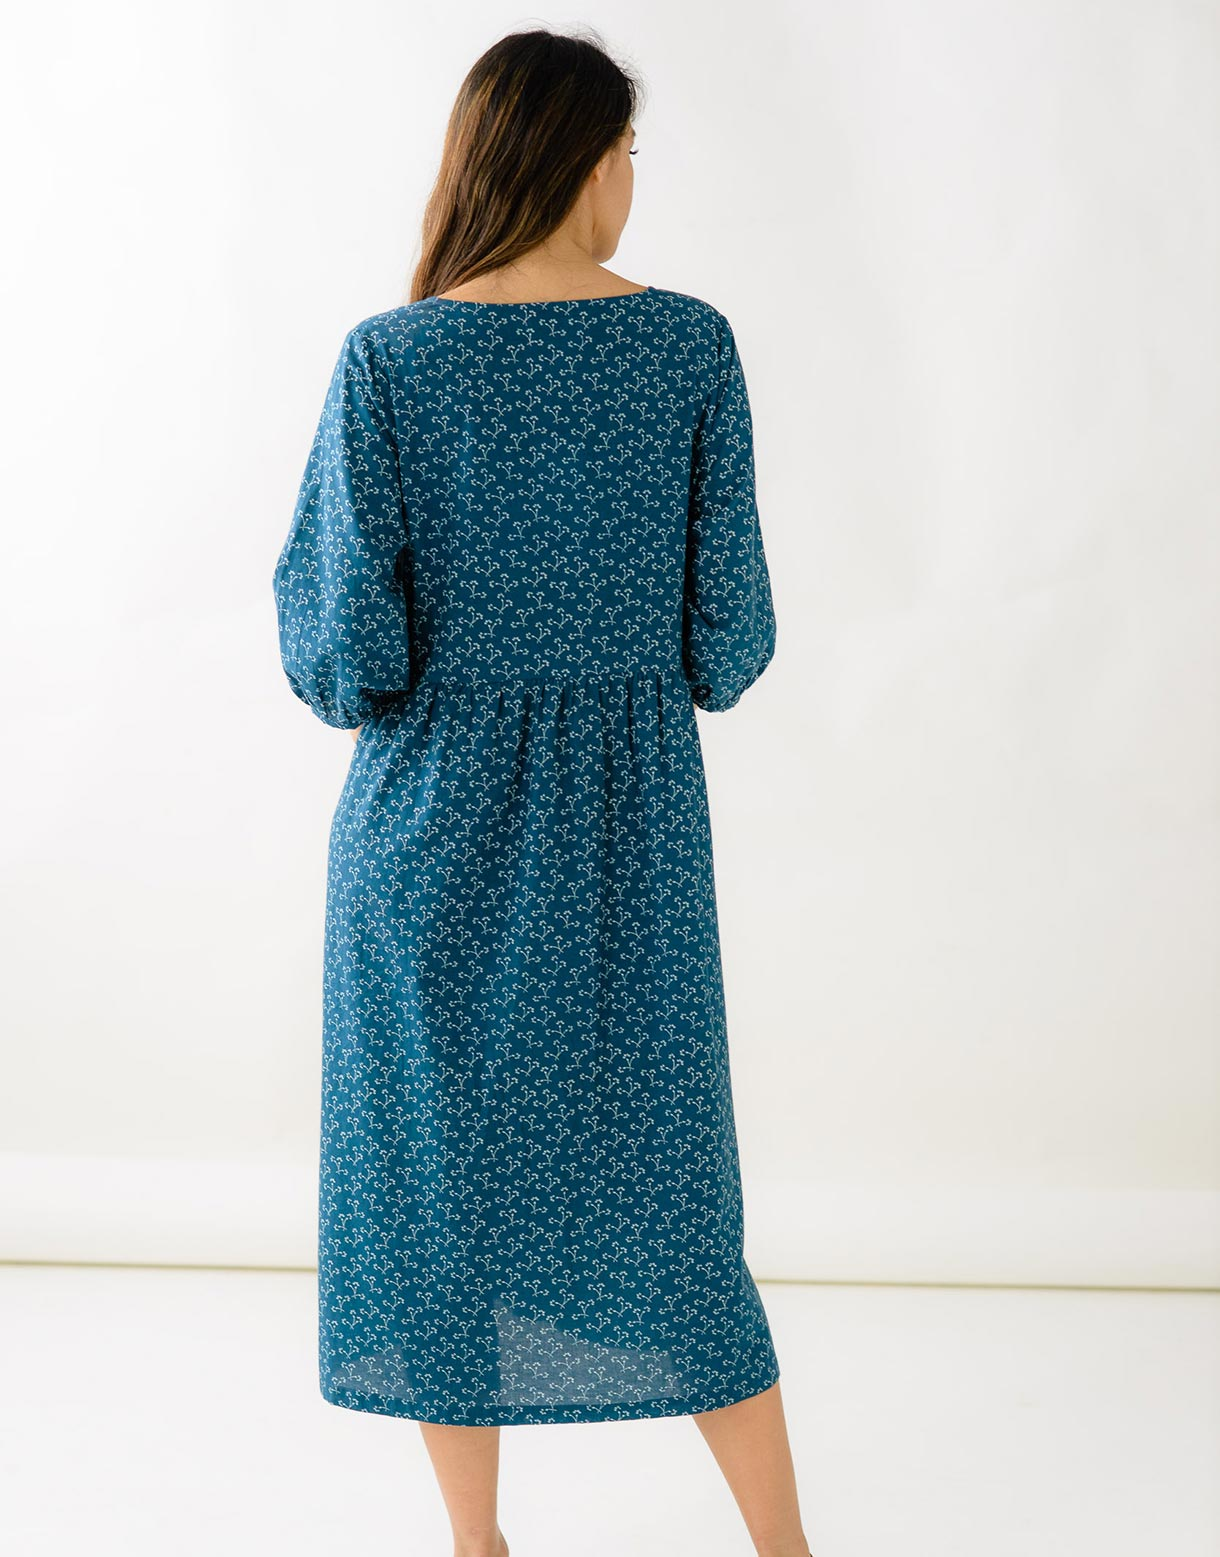 Noeli Dress in Dandy *organic cotton